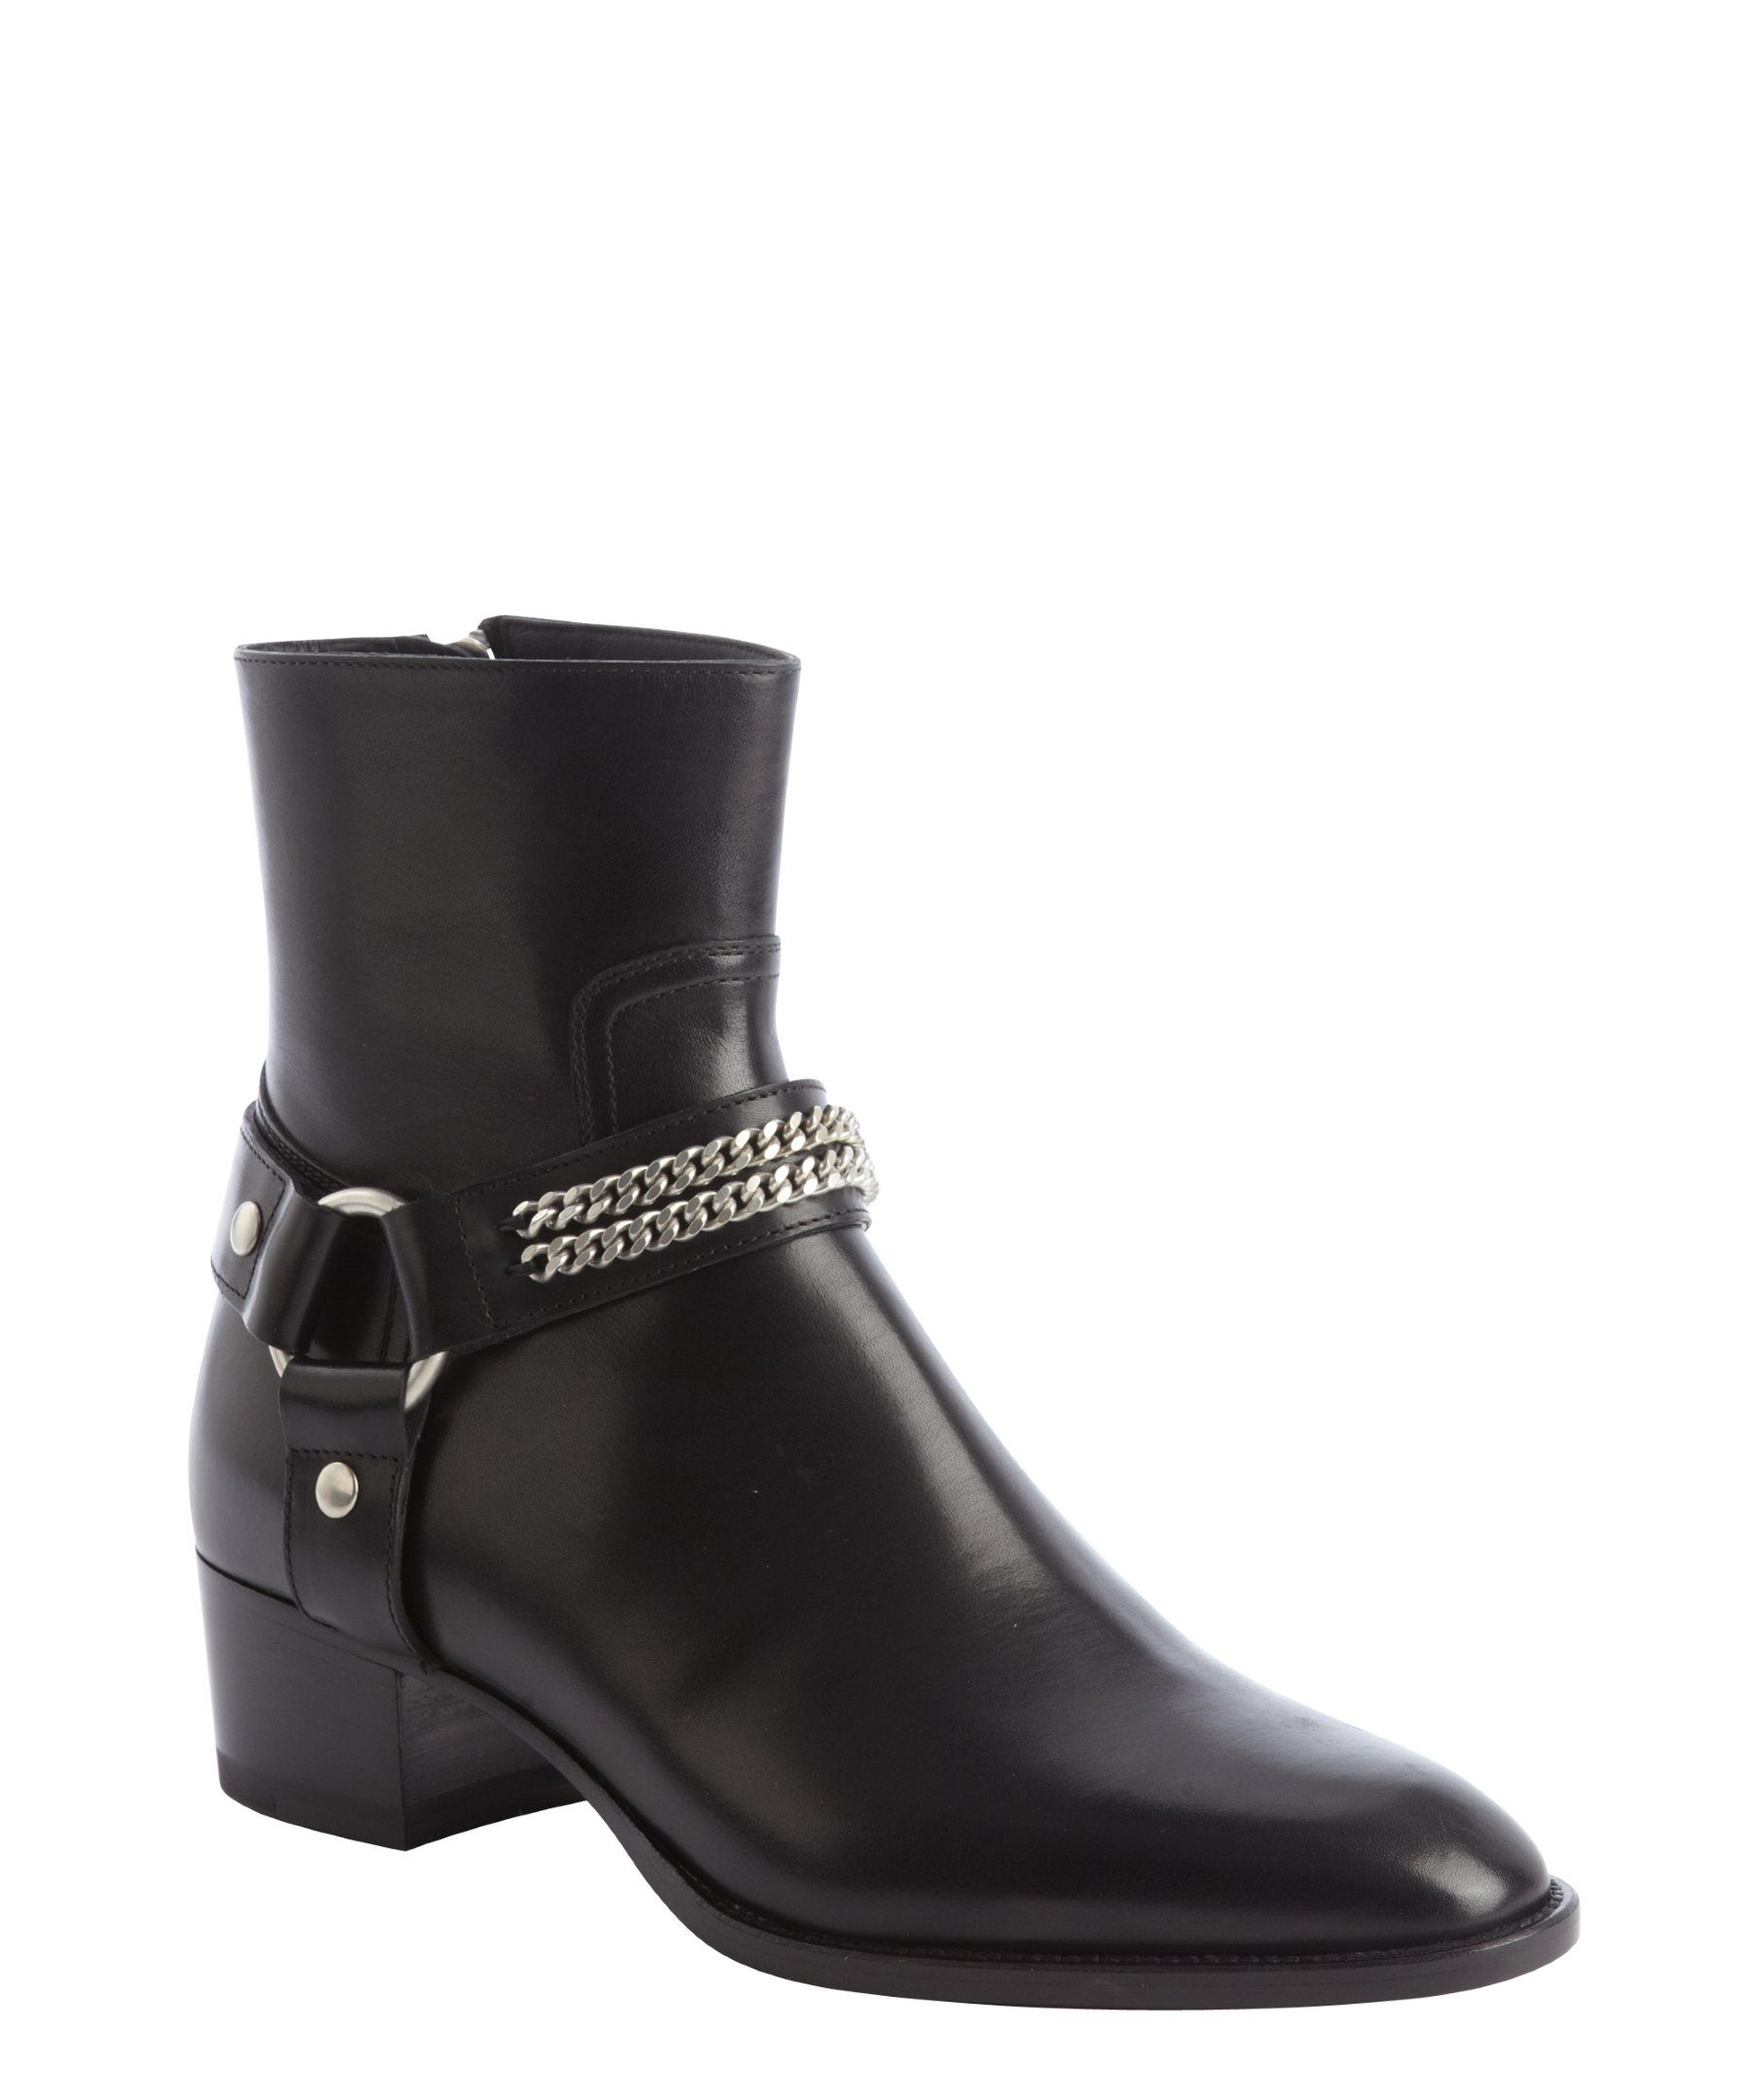 60ac1f5616f Saint Laurent black leather harness detail chainlink ankle boots ...